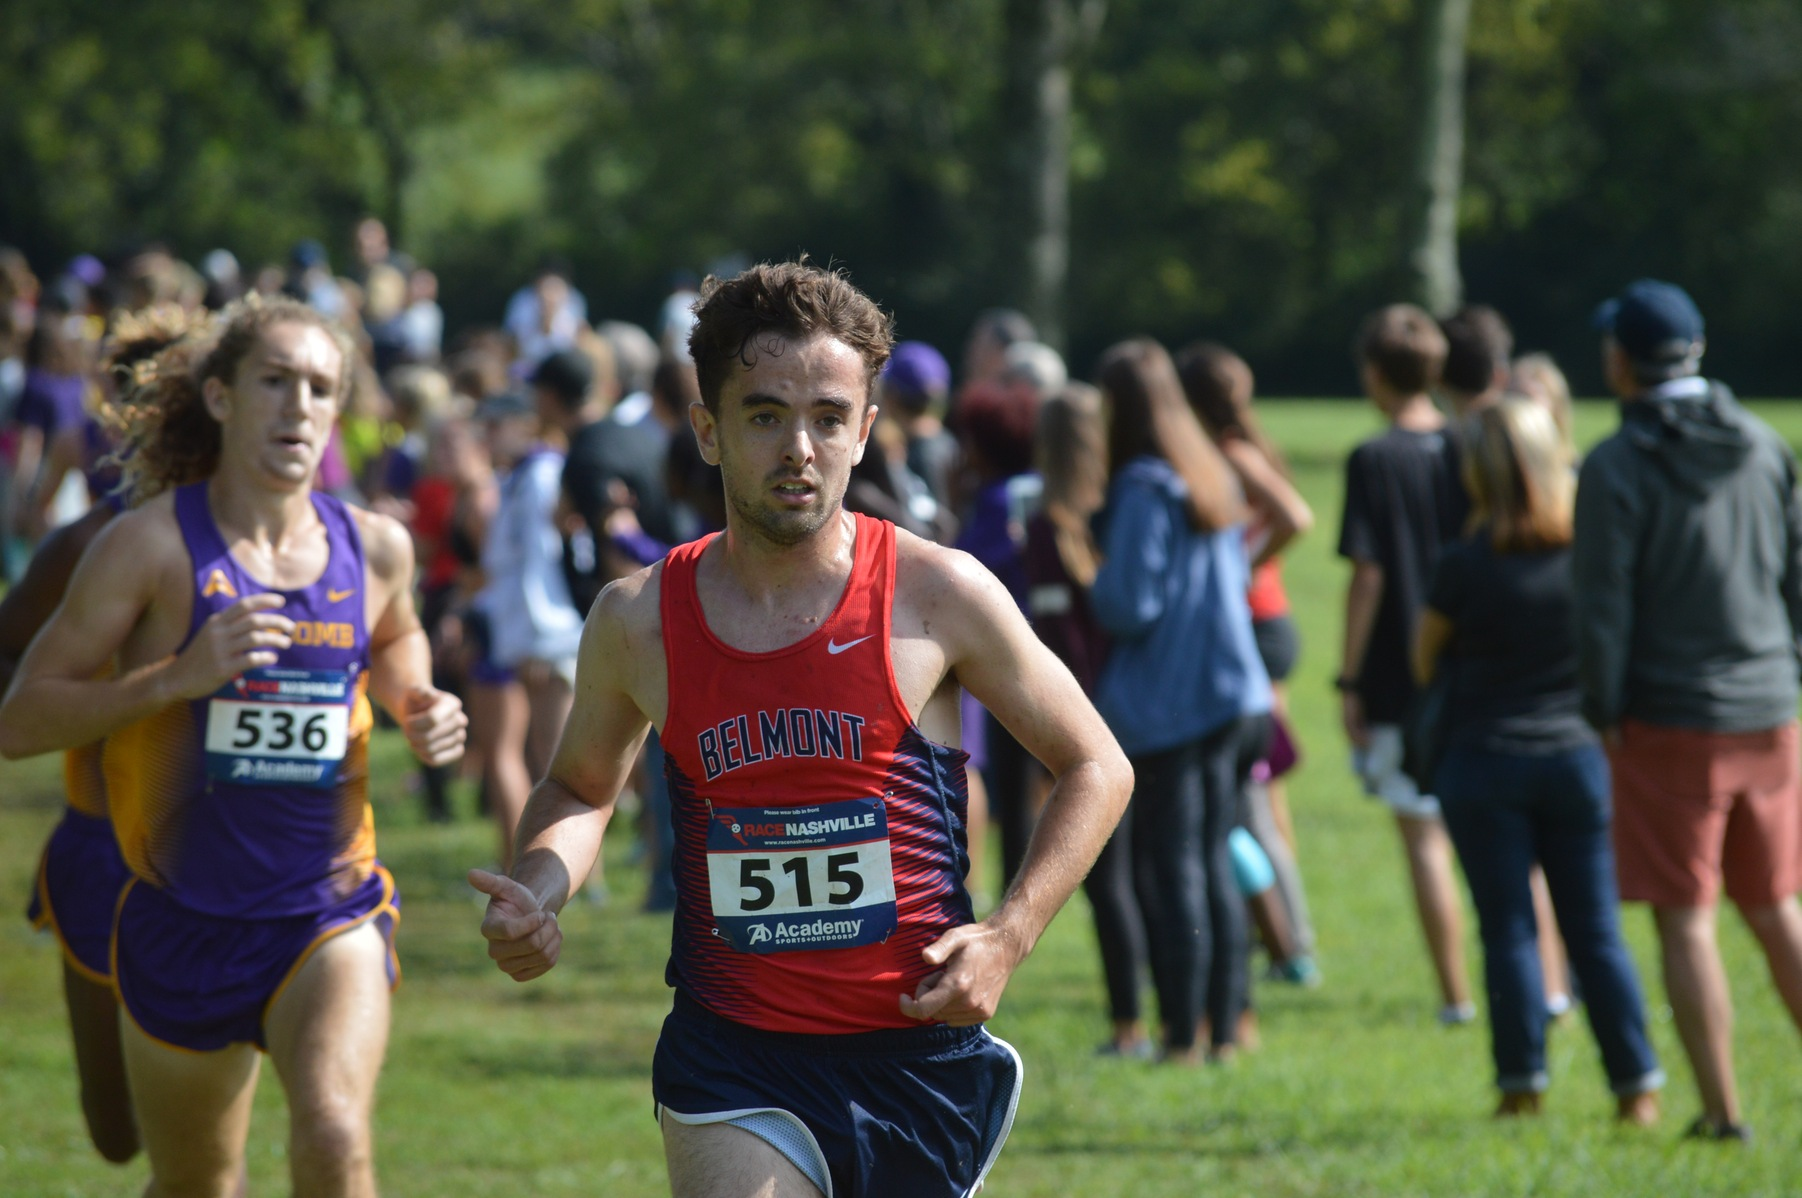 Belmont's Matt Edwards takes the lead in the final mile of the Belmont Opener at Percy Warner Park on Saturday.